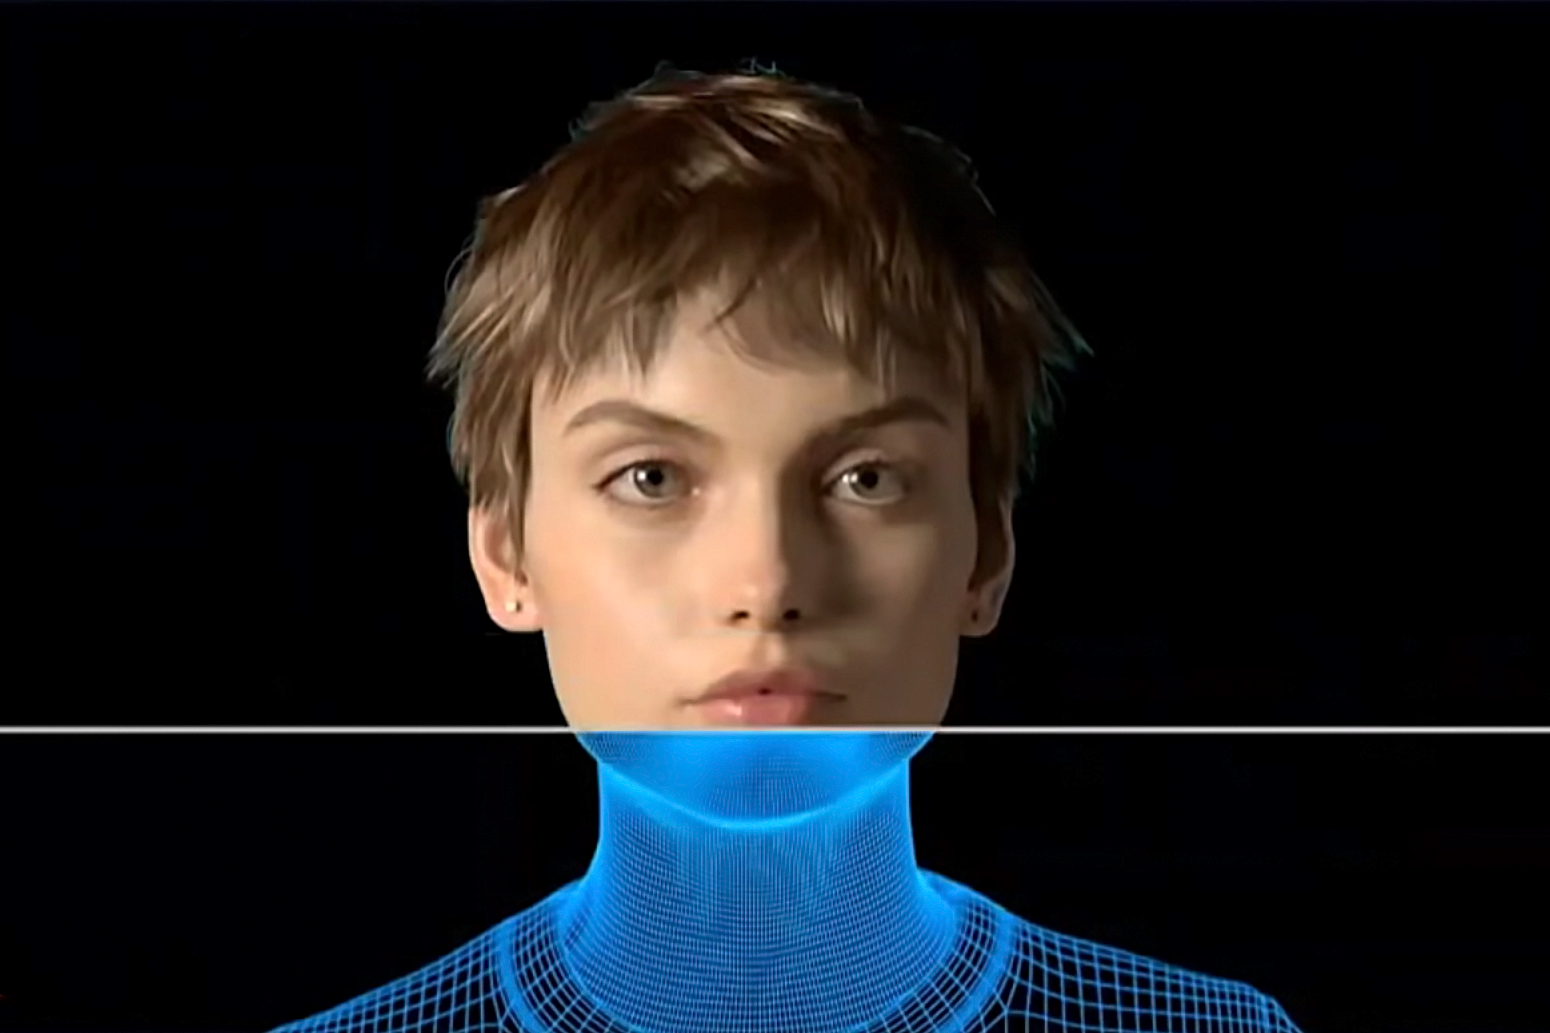 Is This Creepy New AI Assistant Too Lifelike?